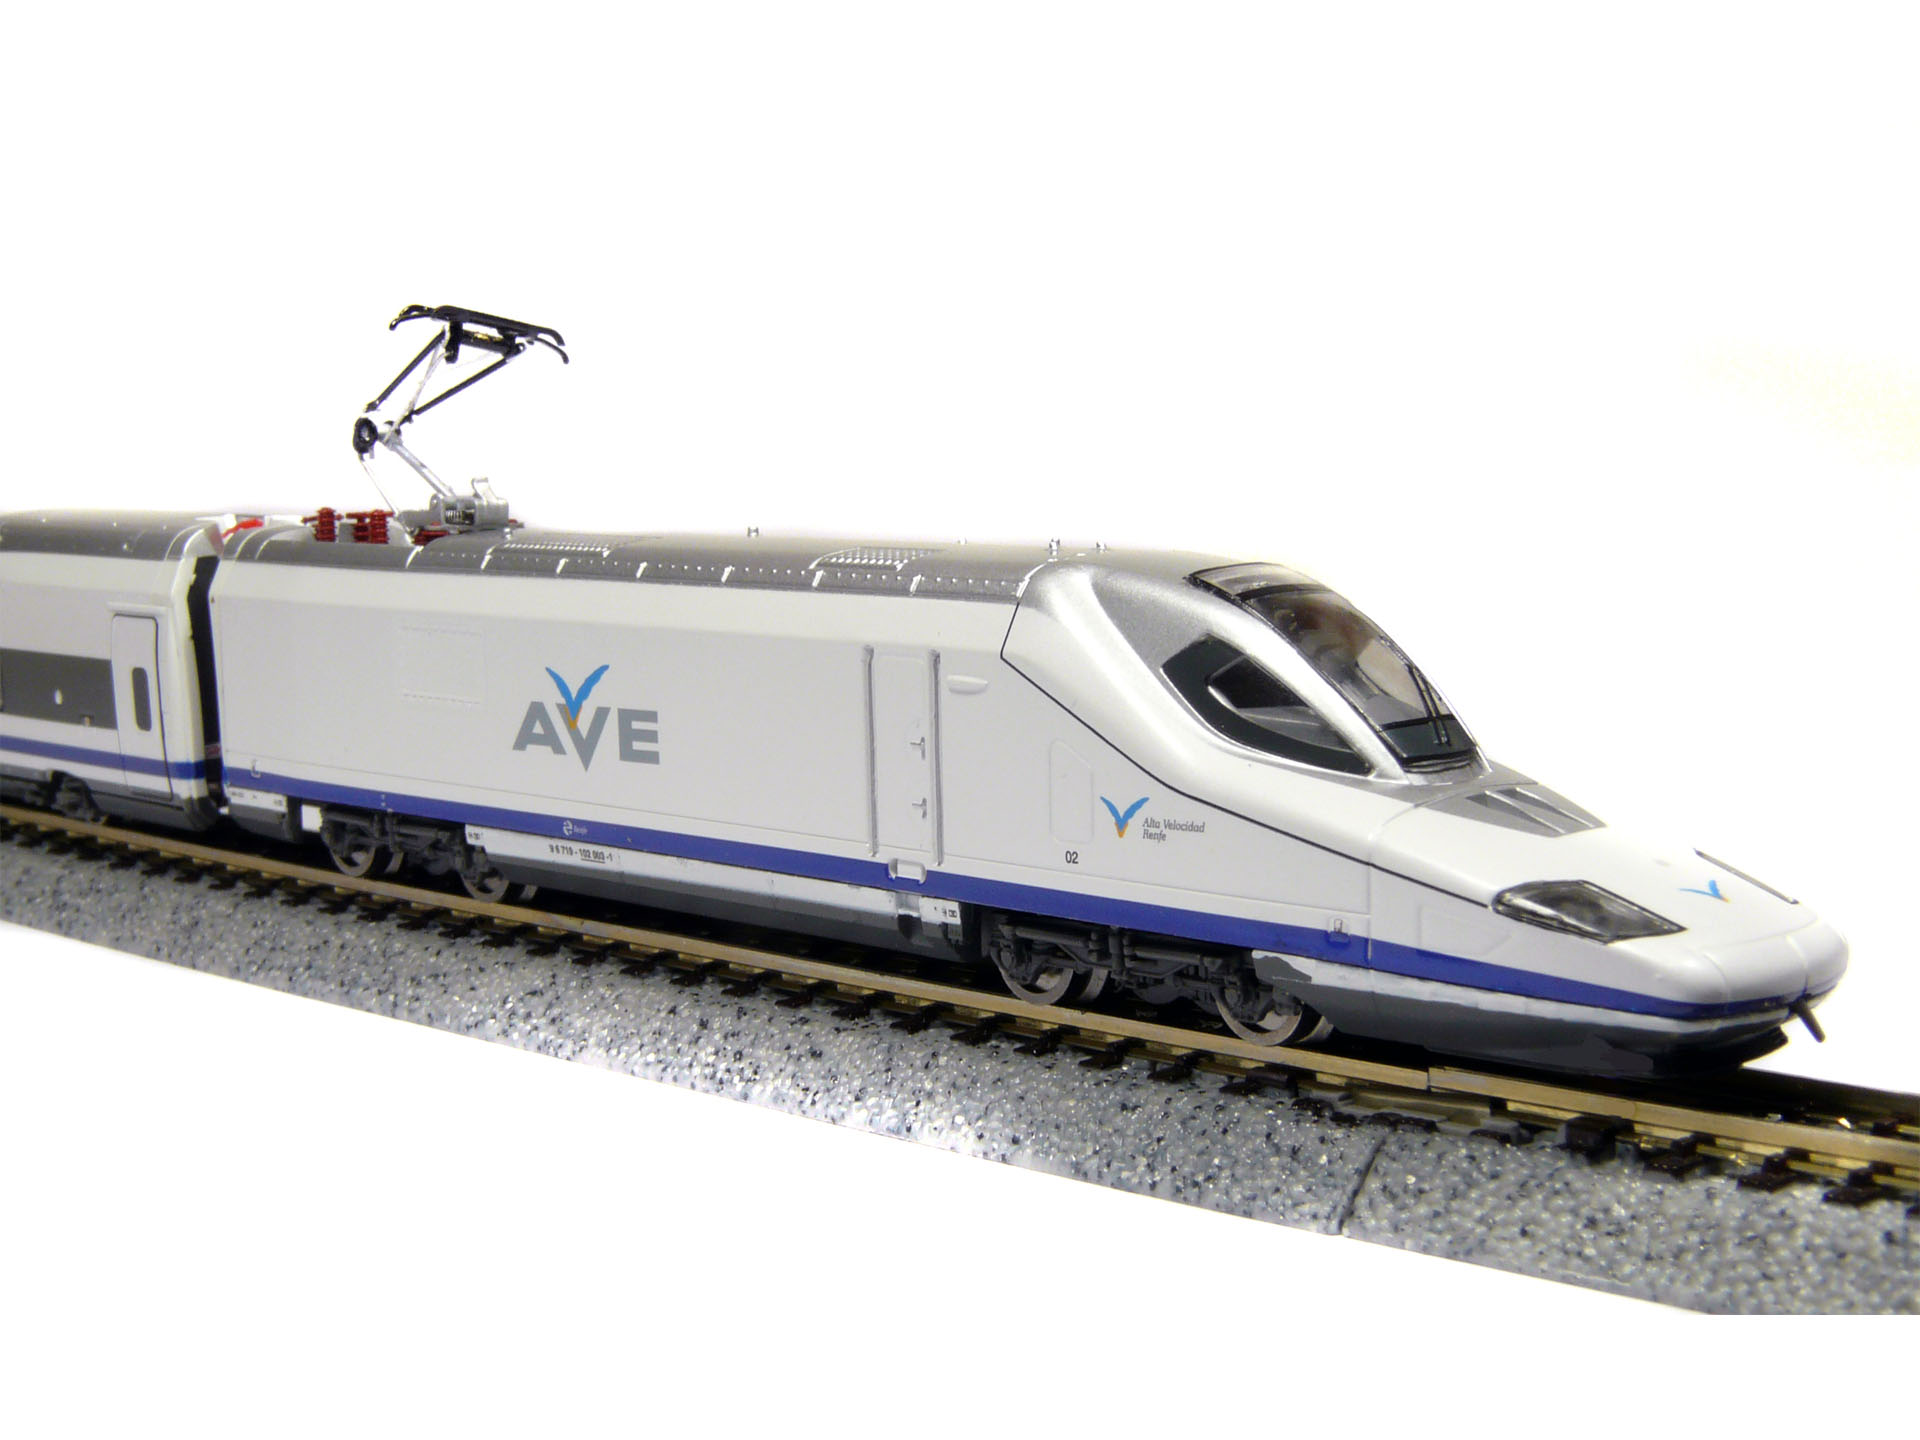 N Scale - TopTrain - 60300 - Passenger Train, Electric, AVE Serie 102 - Renfe - 102 00x